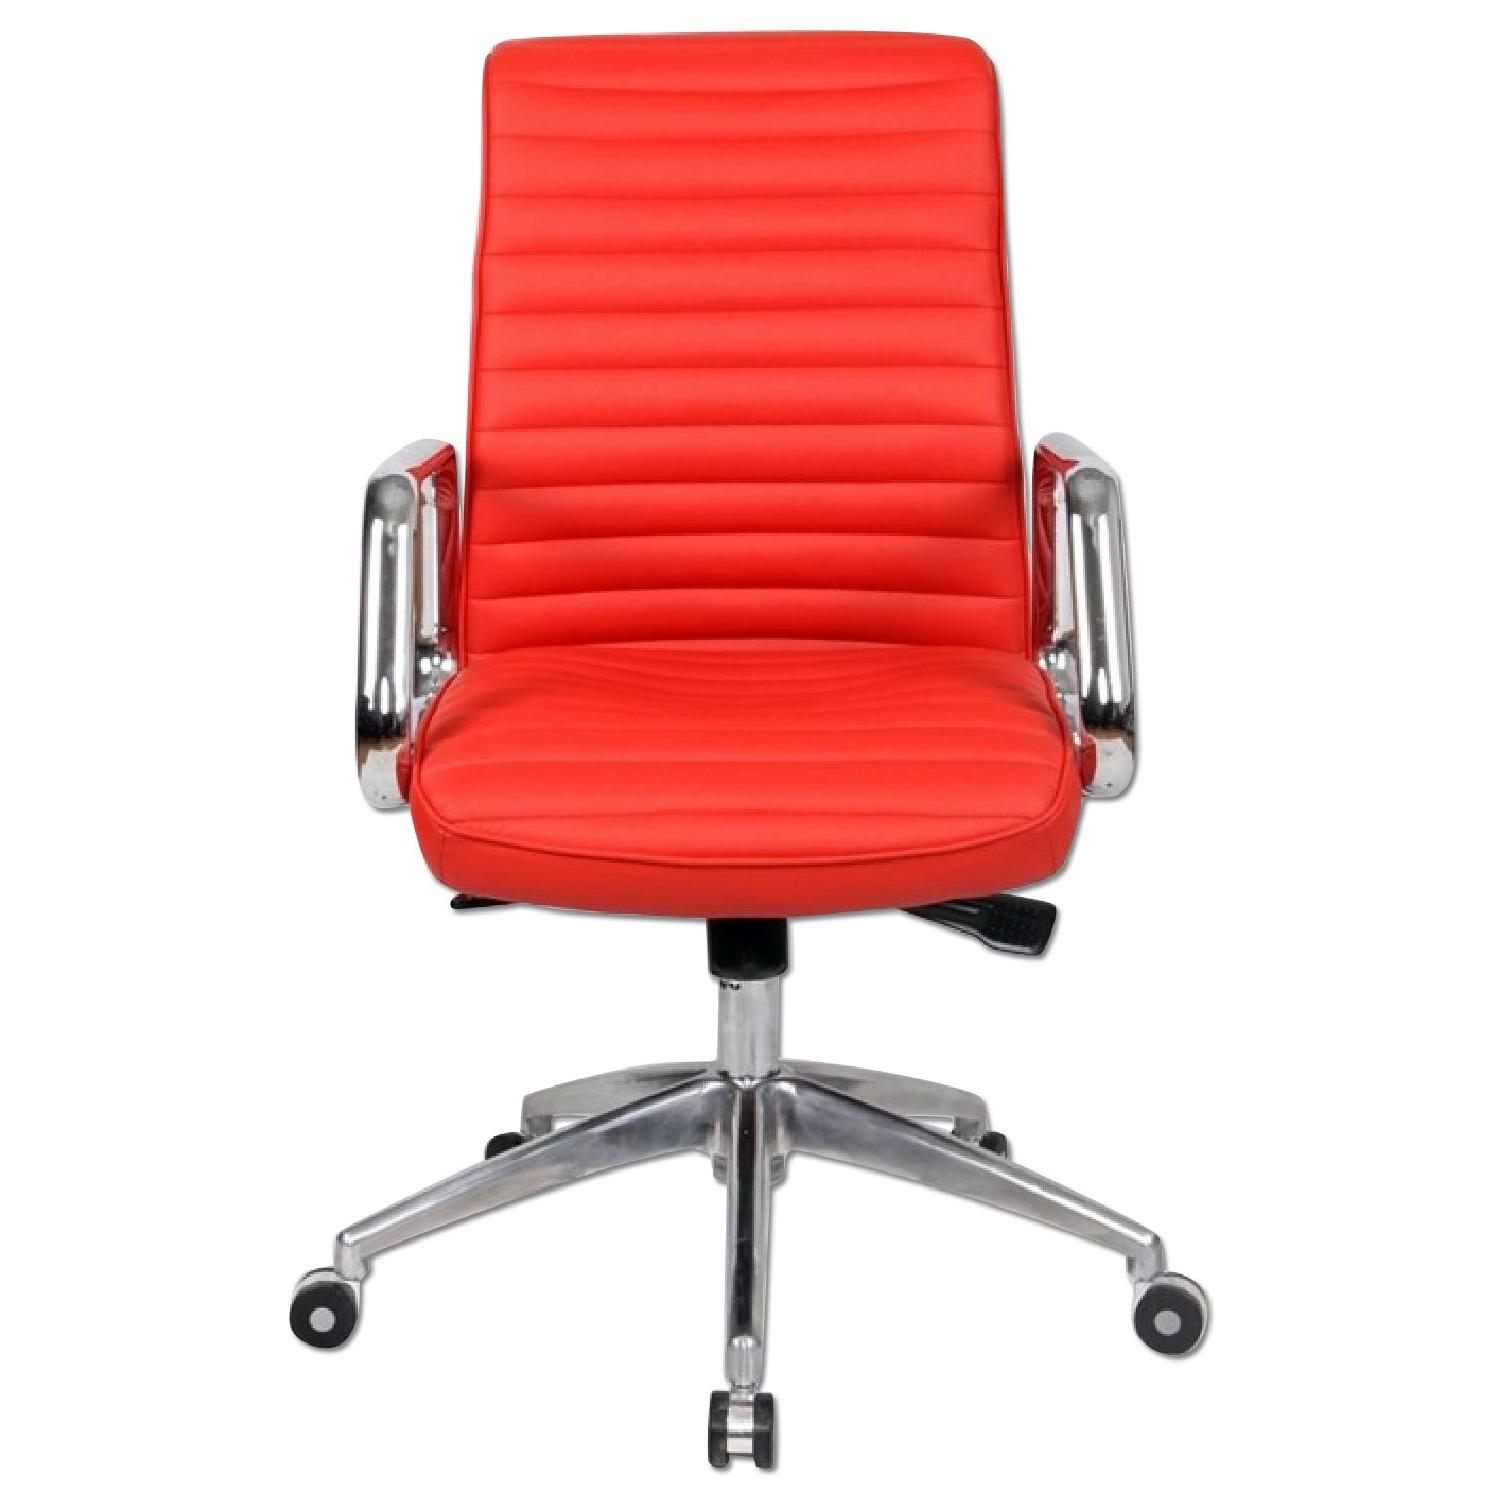 Red Desk Chair Modern Steel Frame Office Chair W Padded Seat Back Uphols